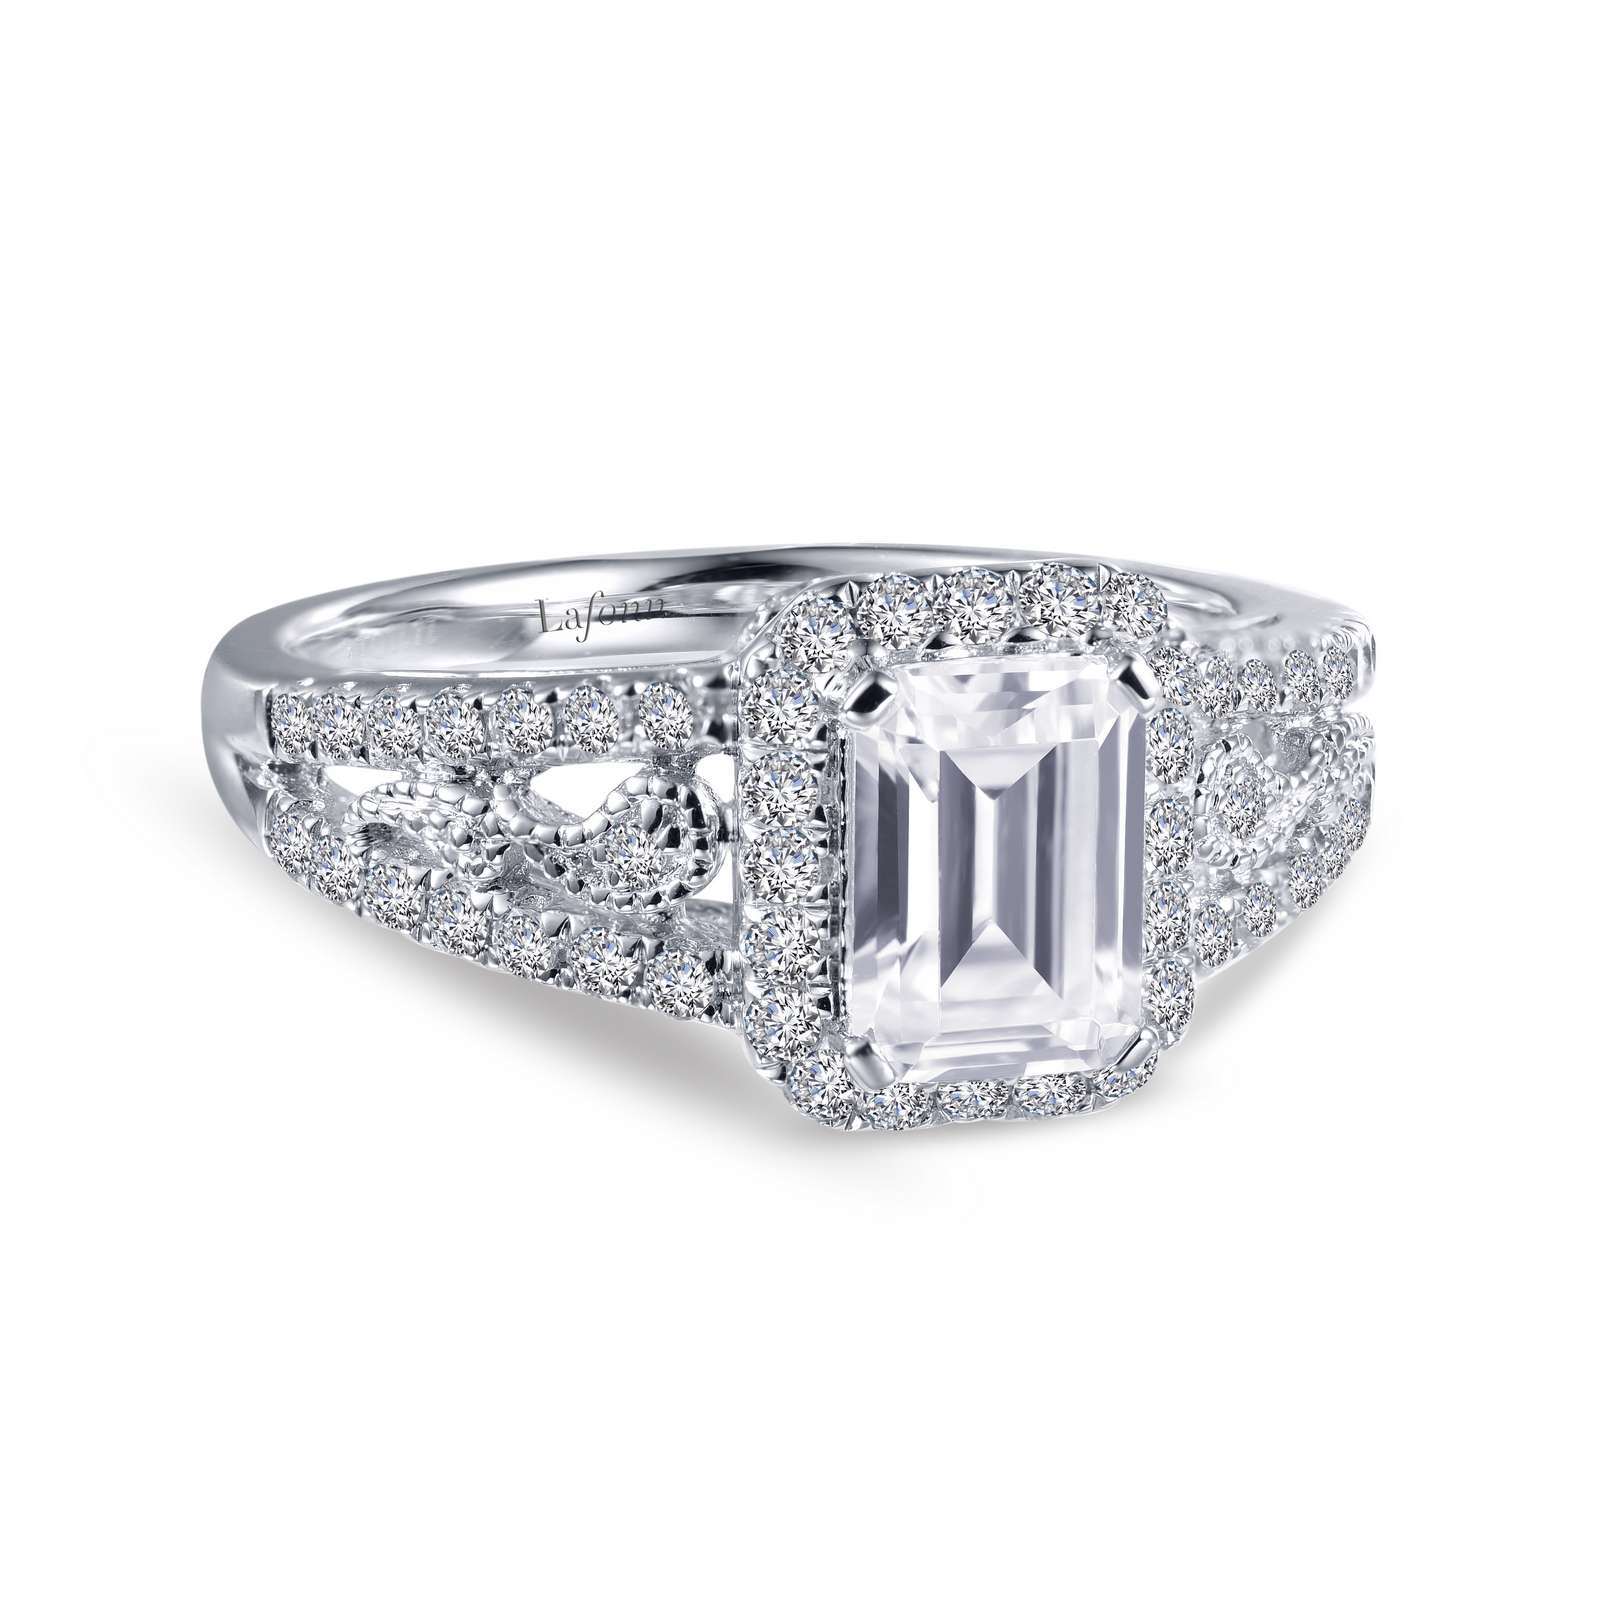 Heritage Simulated Diamond Platinum Bonded Ring by Lafonn Jewelry